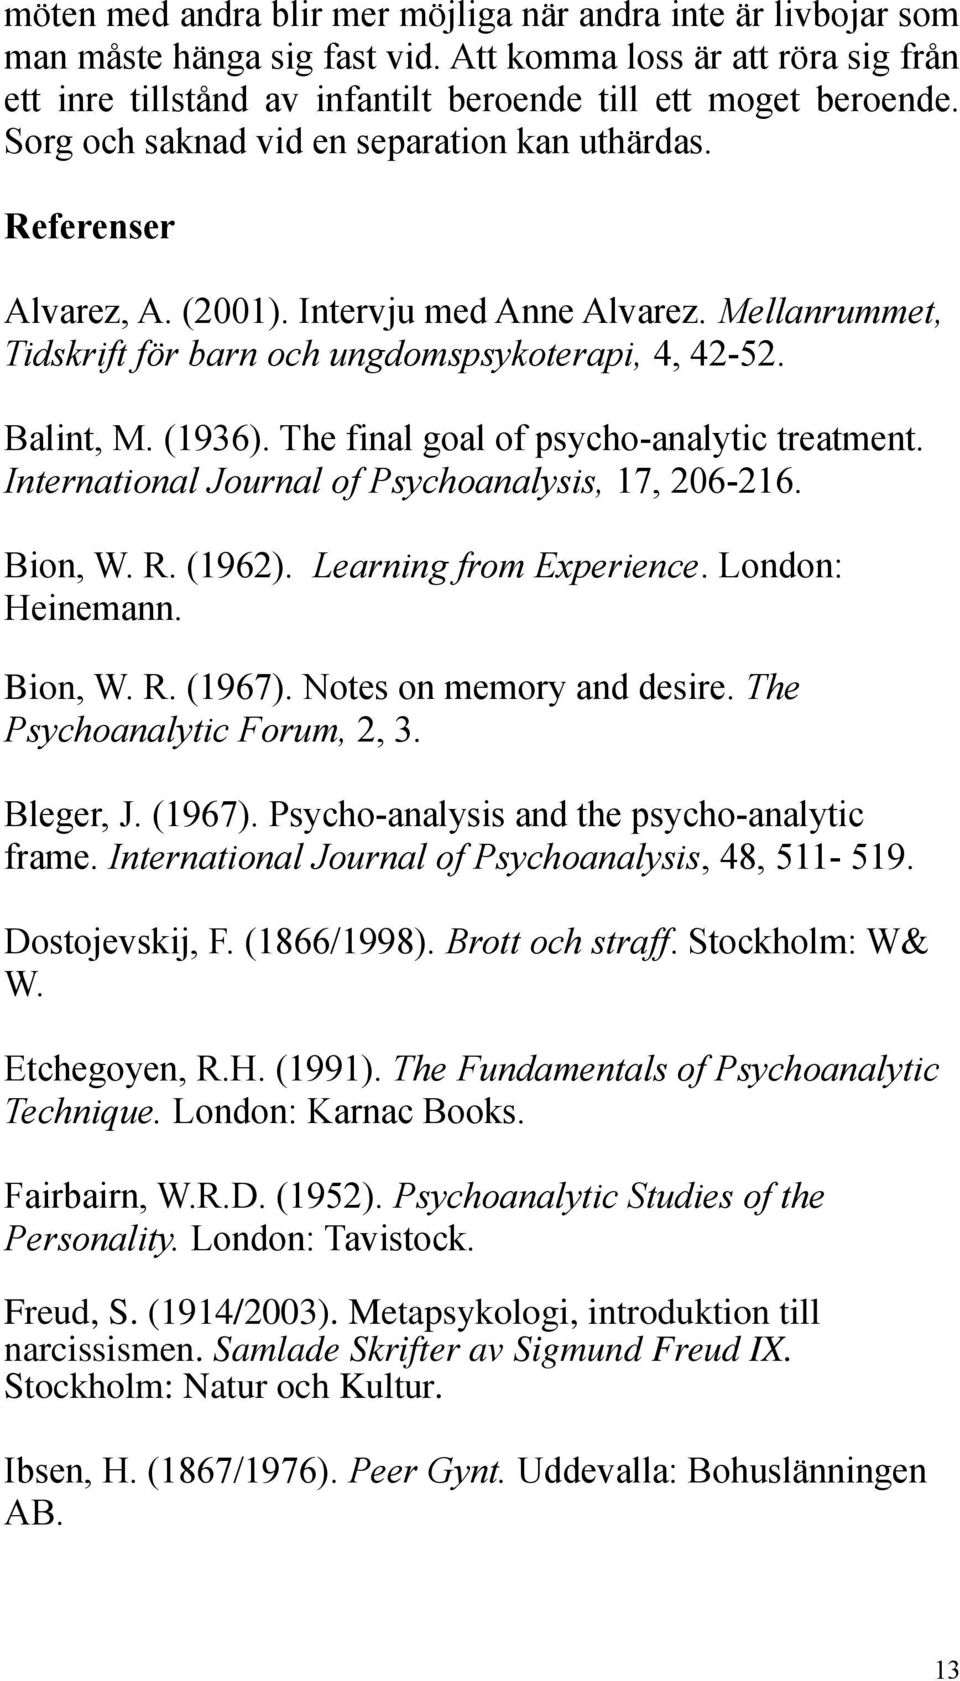 The final goal of psycho-analytic treatment. International Journal of Psychoanalysis, 17, 206-216. Bion, W. R. (1962). Learning from Experience. London: Heinemann. Bion, W. R. (1967).